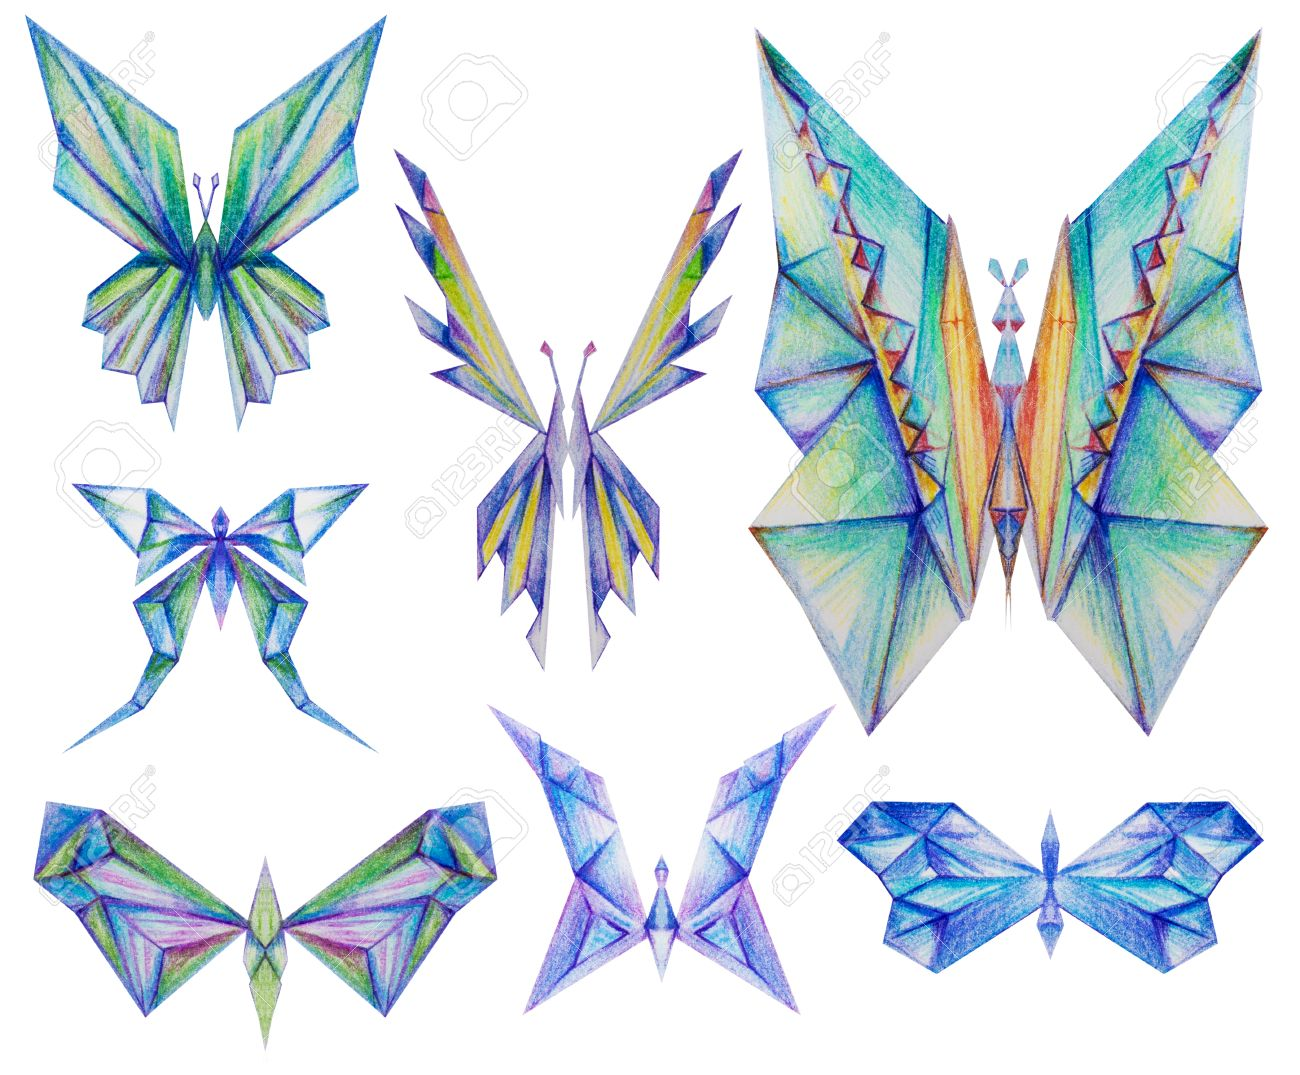 Triangular Diamond Like Butterfly Collection Color Pencil Drawing Isolated On White Stock